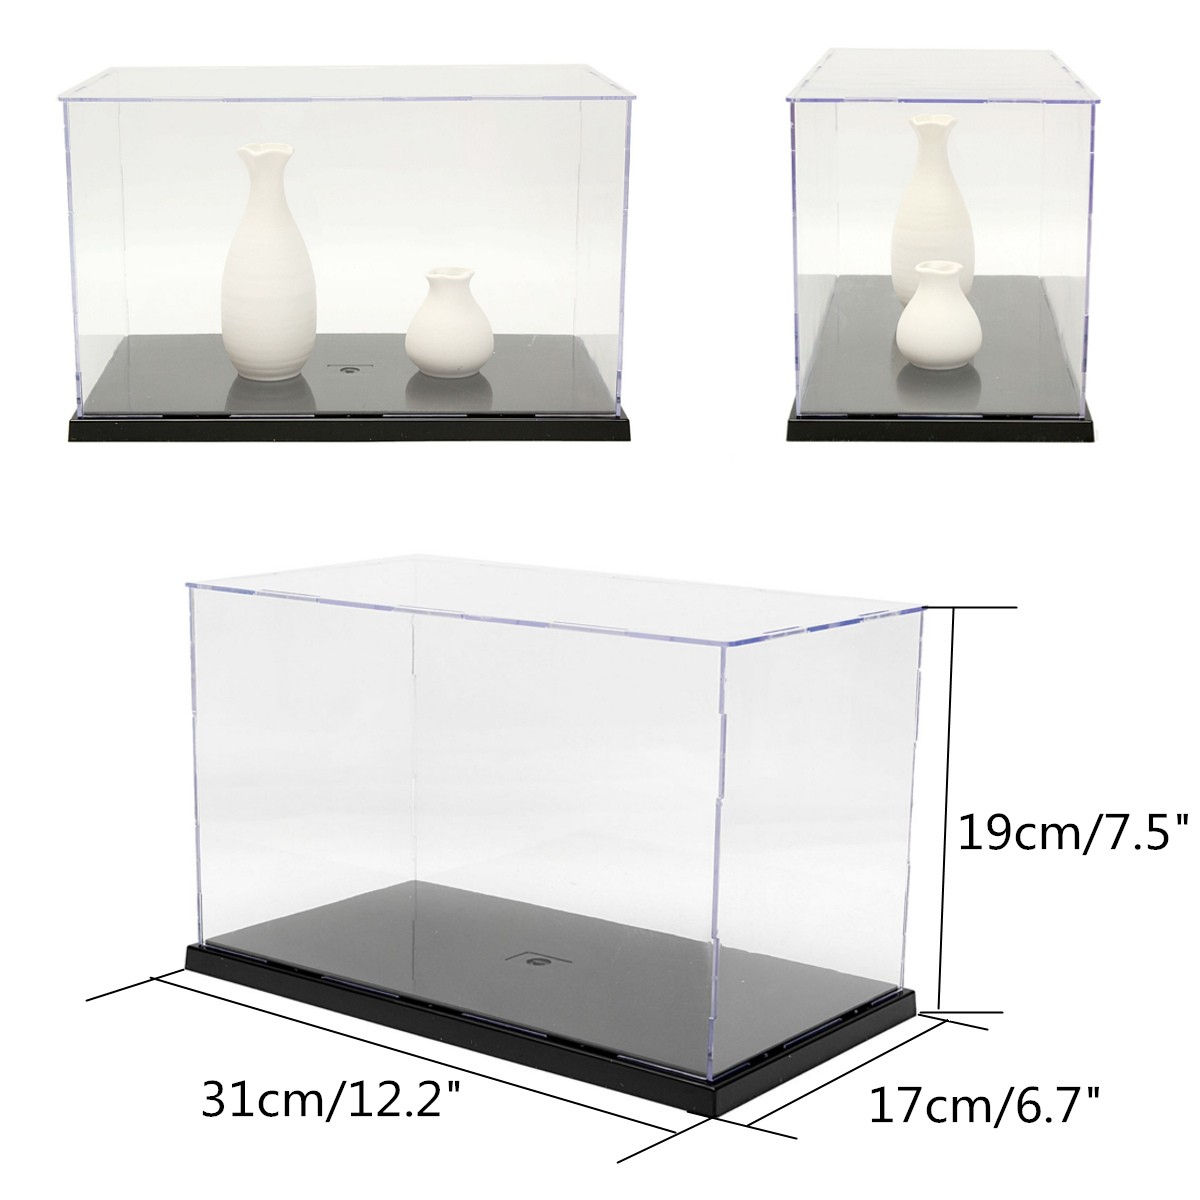 Plastic Acrylic Display Show Box Case Toy Dustproof Tray Protection Display Box Case 31*17*19cm For Children Blocks Toys Display 3 steps display case box dustproof showcase gray base acrylic plastic display box case 25 5x15 5x13 8cm 5 colors